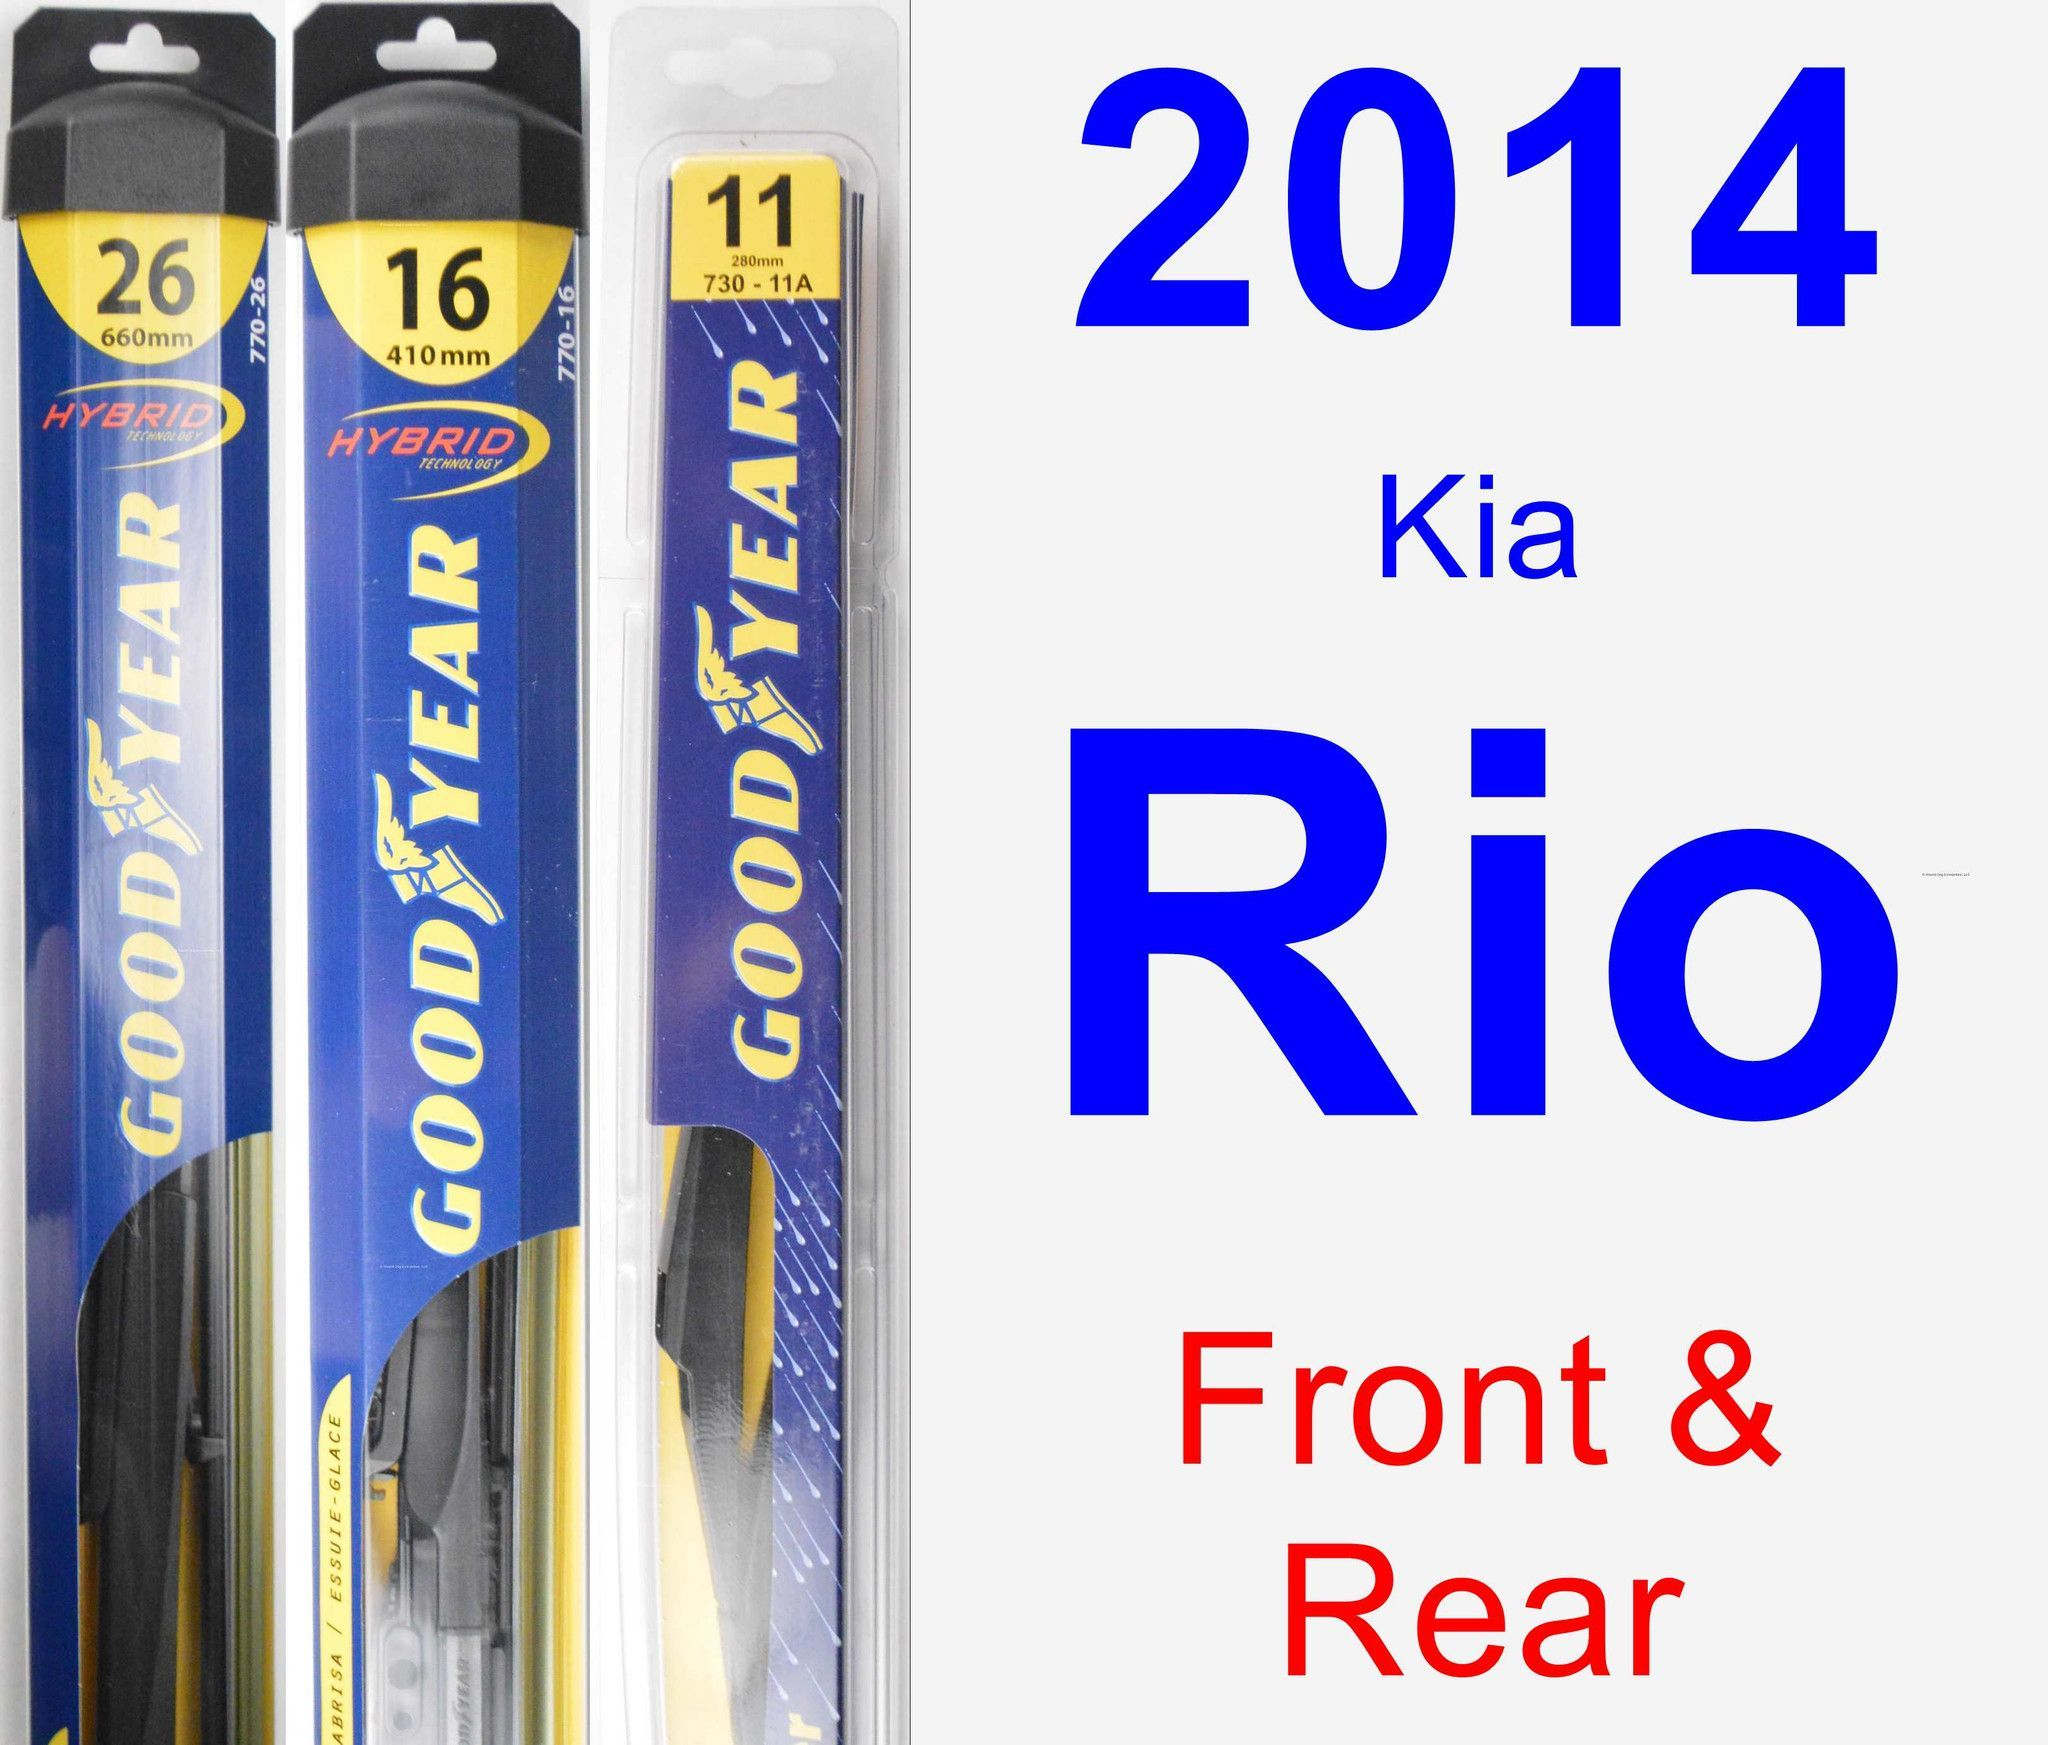 Front Amp Rear Wiper Blade Pack For 2014 Kia Rio Hybrid